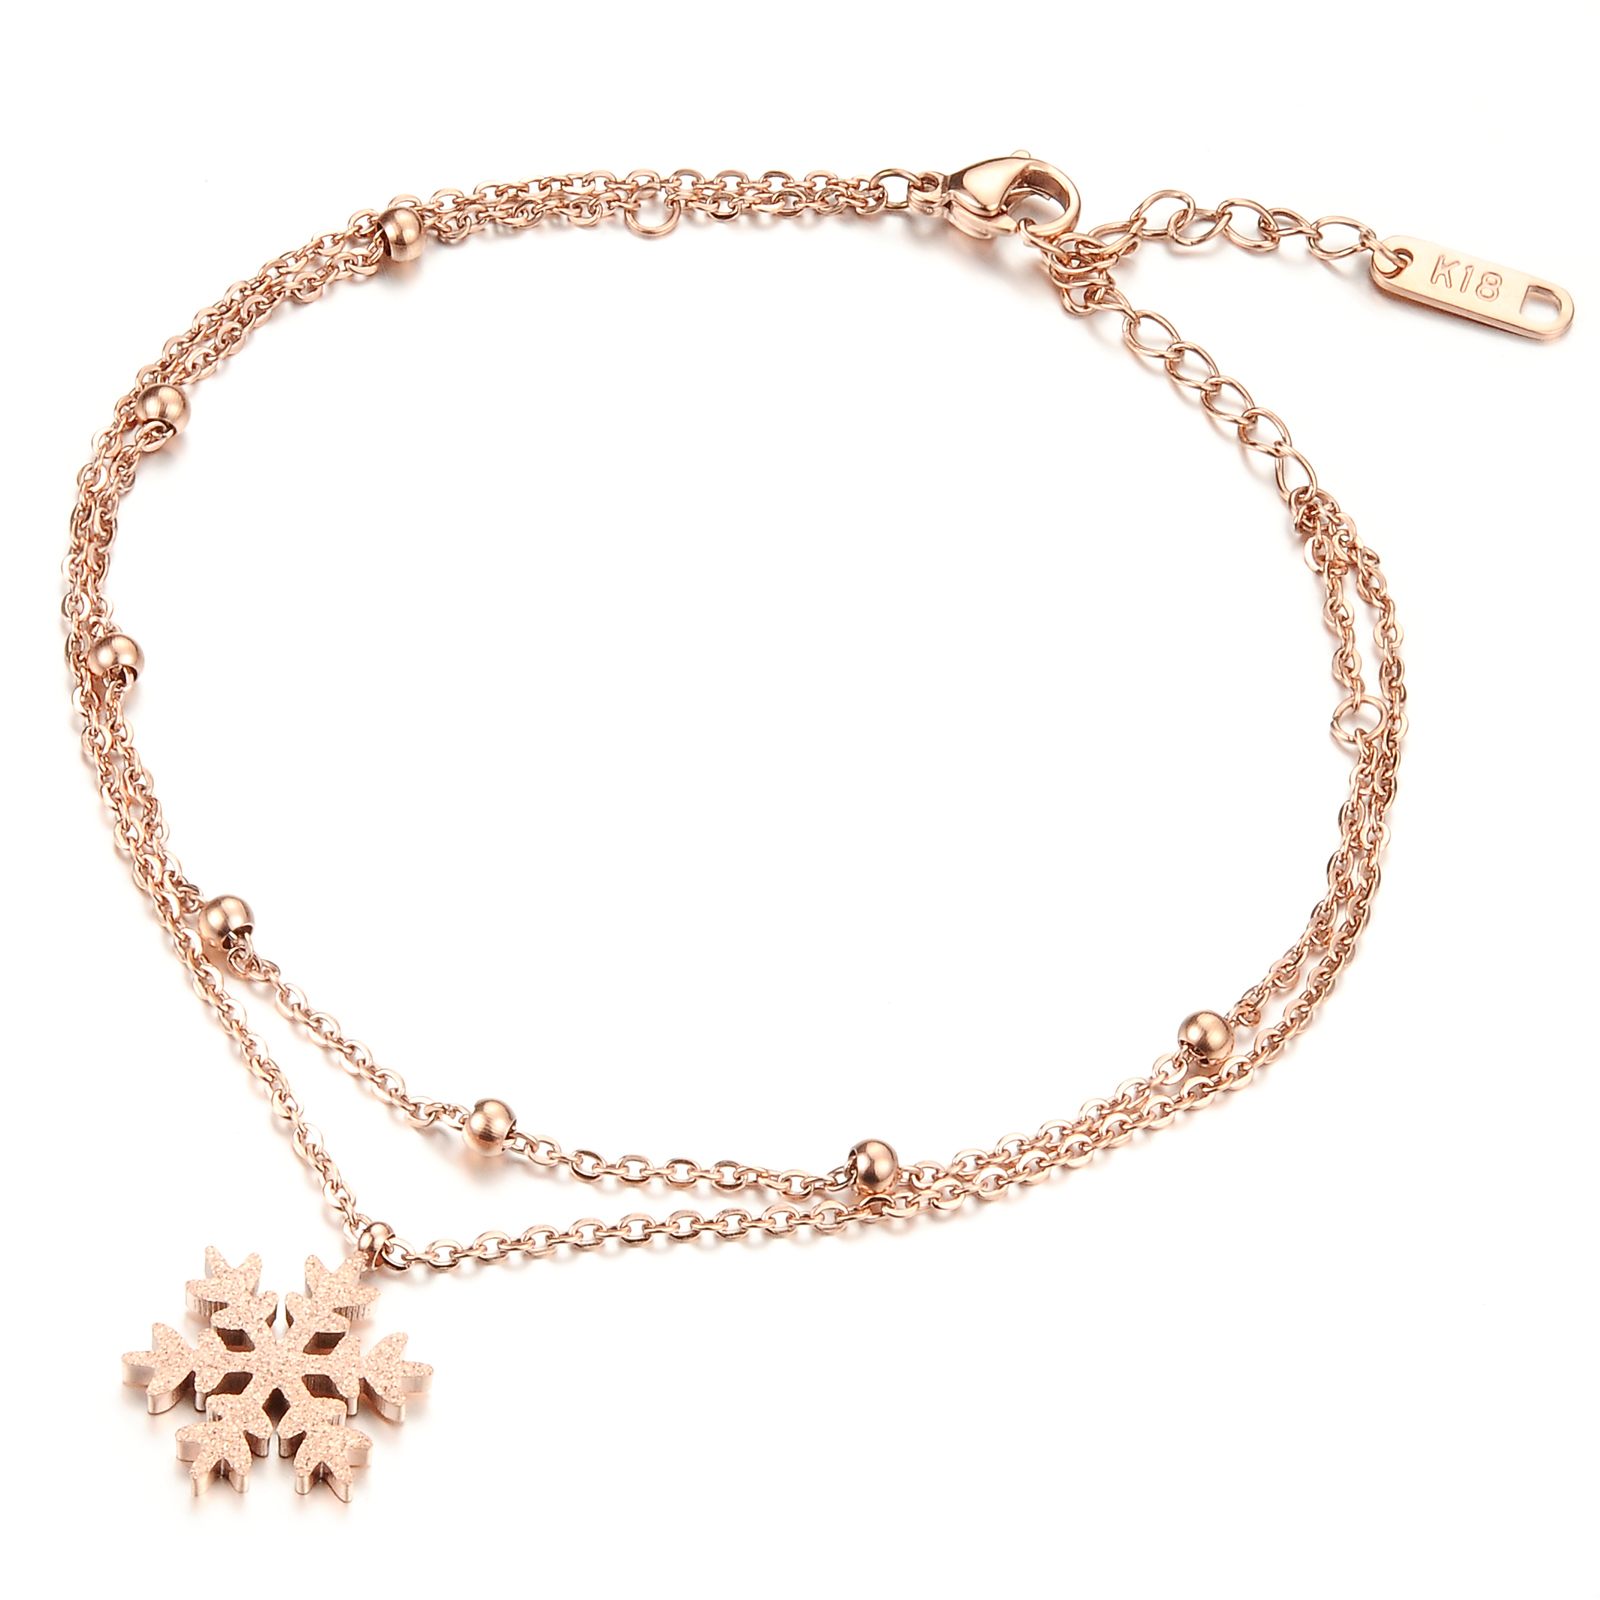 Romantic Double Layer Snowflake Woman Anklets Rose Gold Plated Stainless Steel Link Chain Women Ankle Jewelry gift